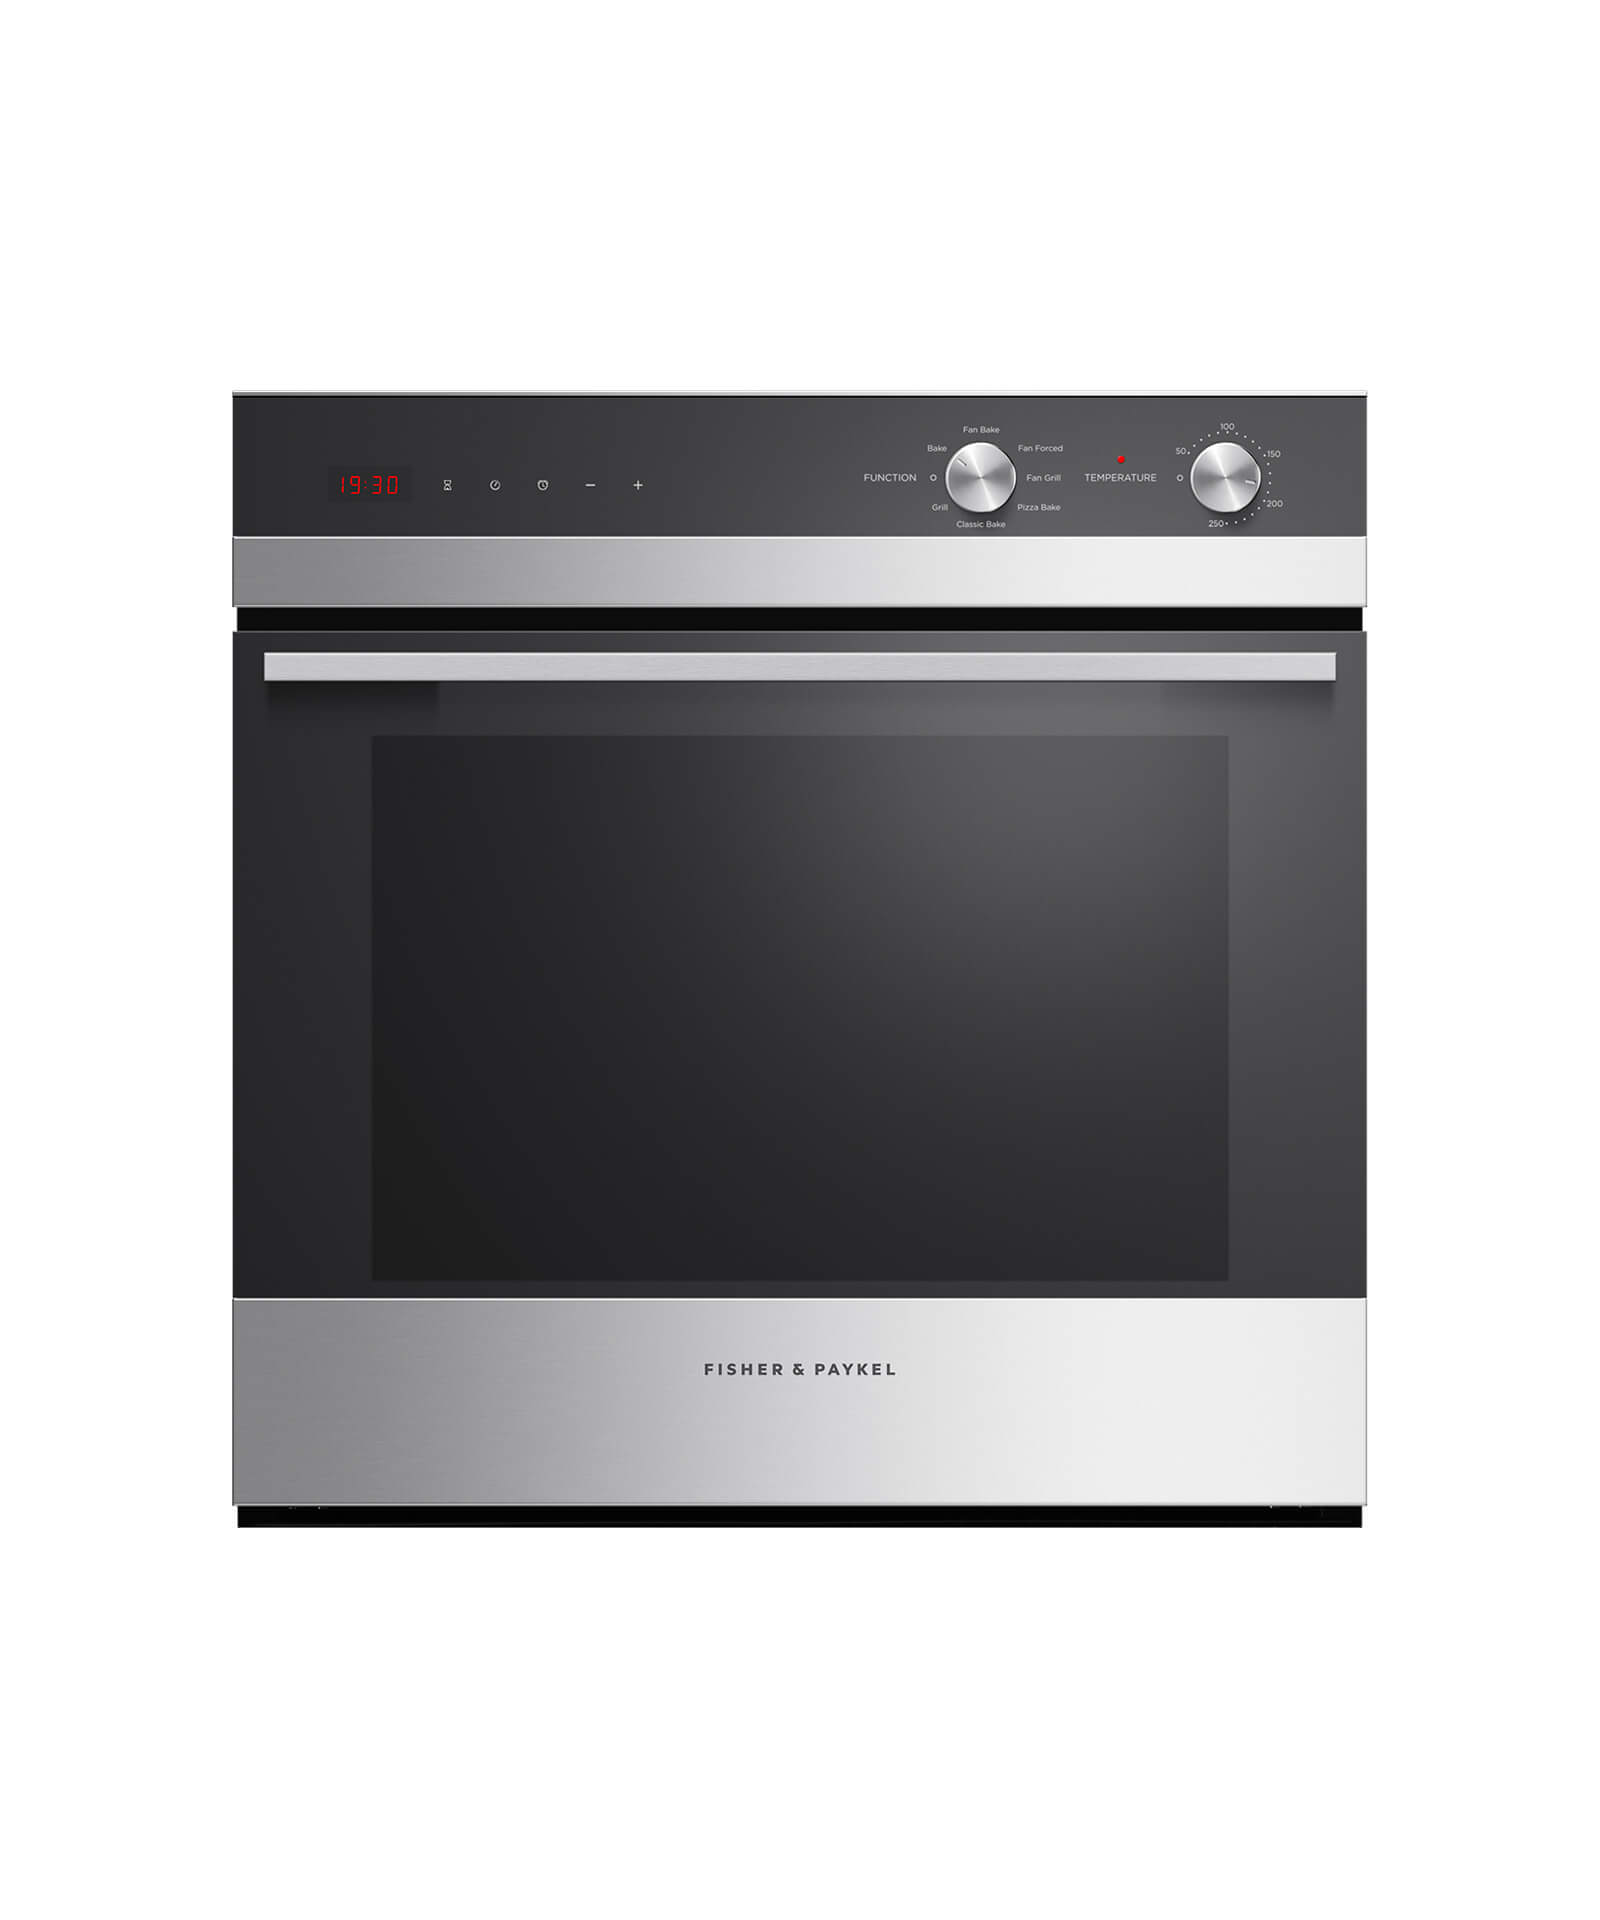 OB60SC7CEX2 - 60cm 7 Function  Built-in Oven - 85L - 81742